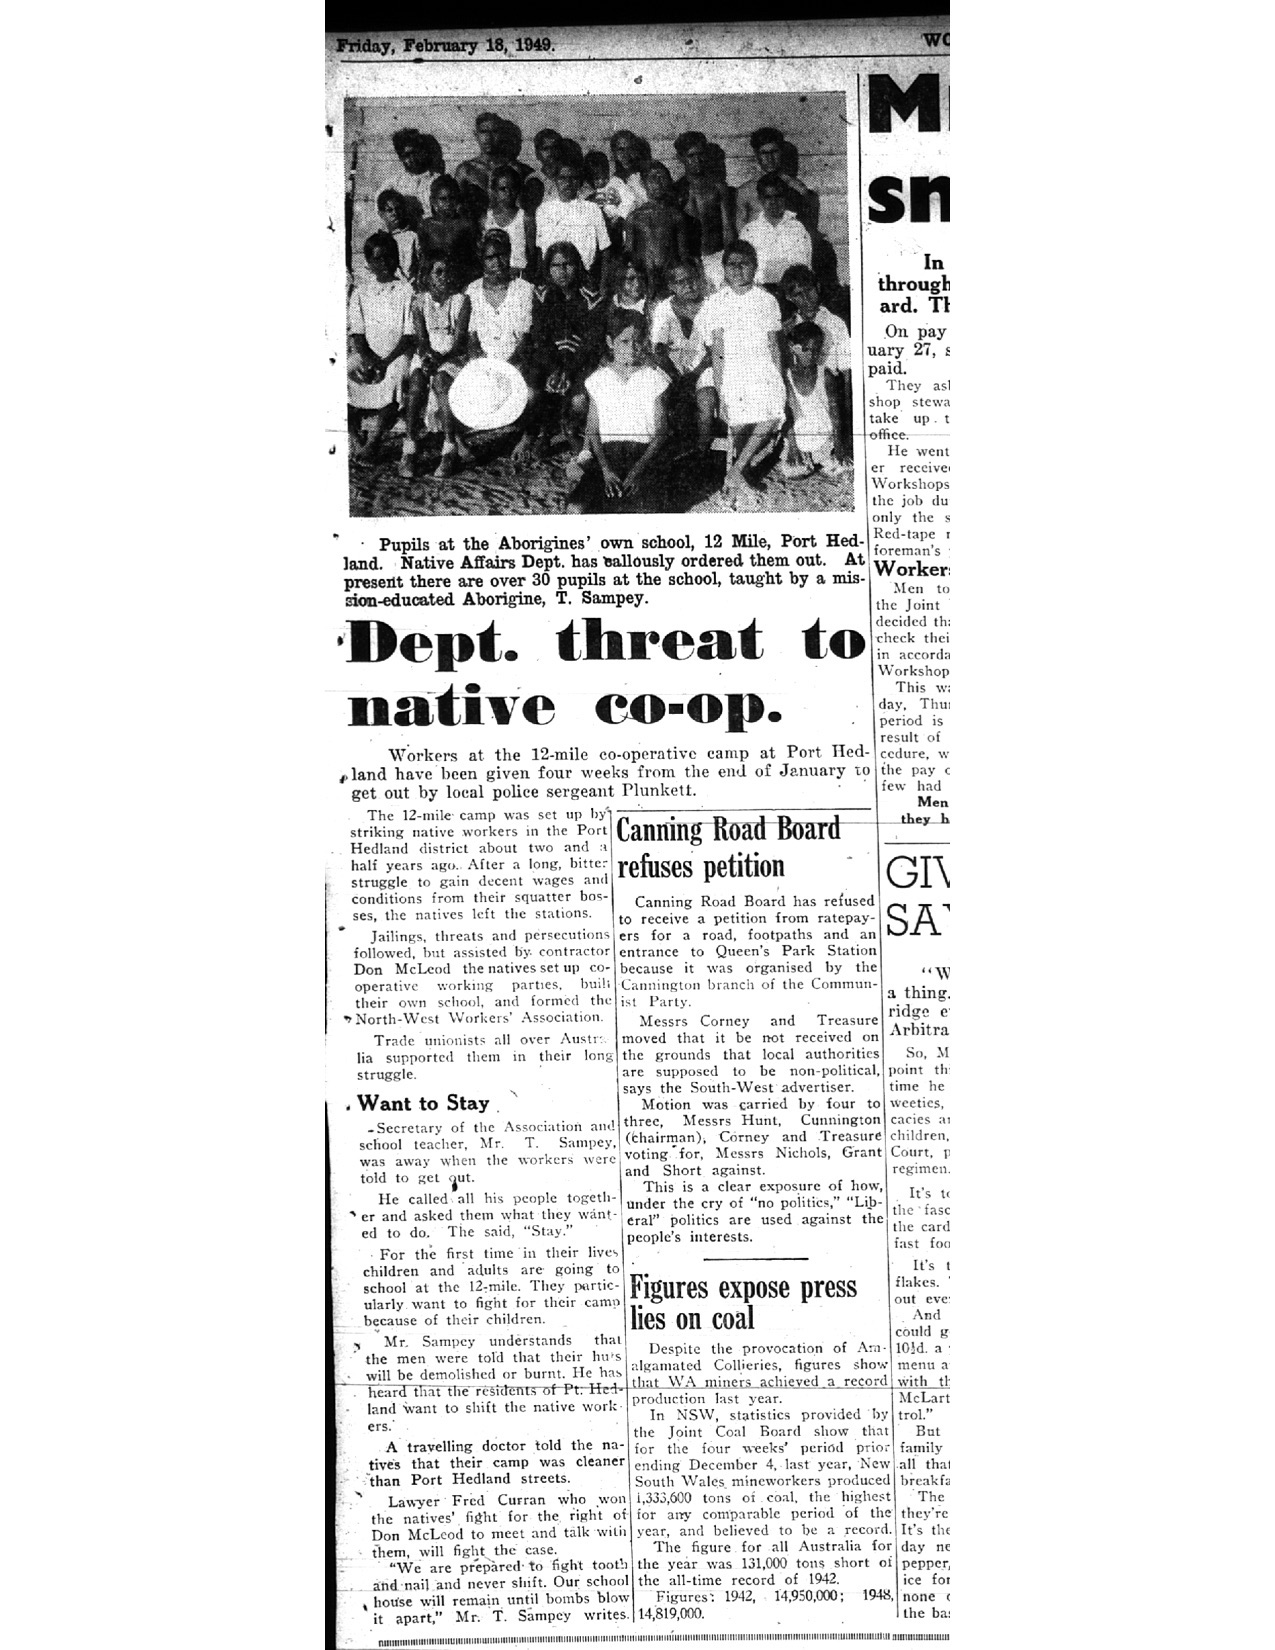 Dept. Threat to Native Co-op newspaper article